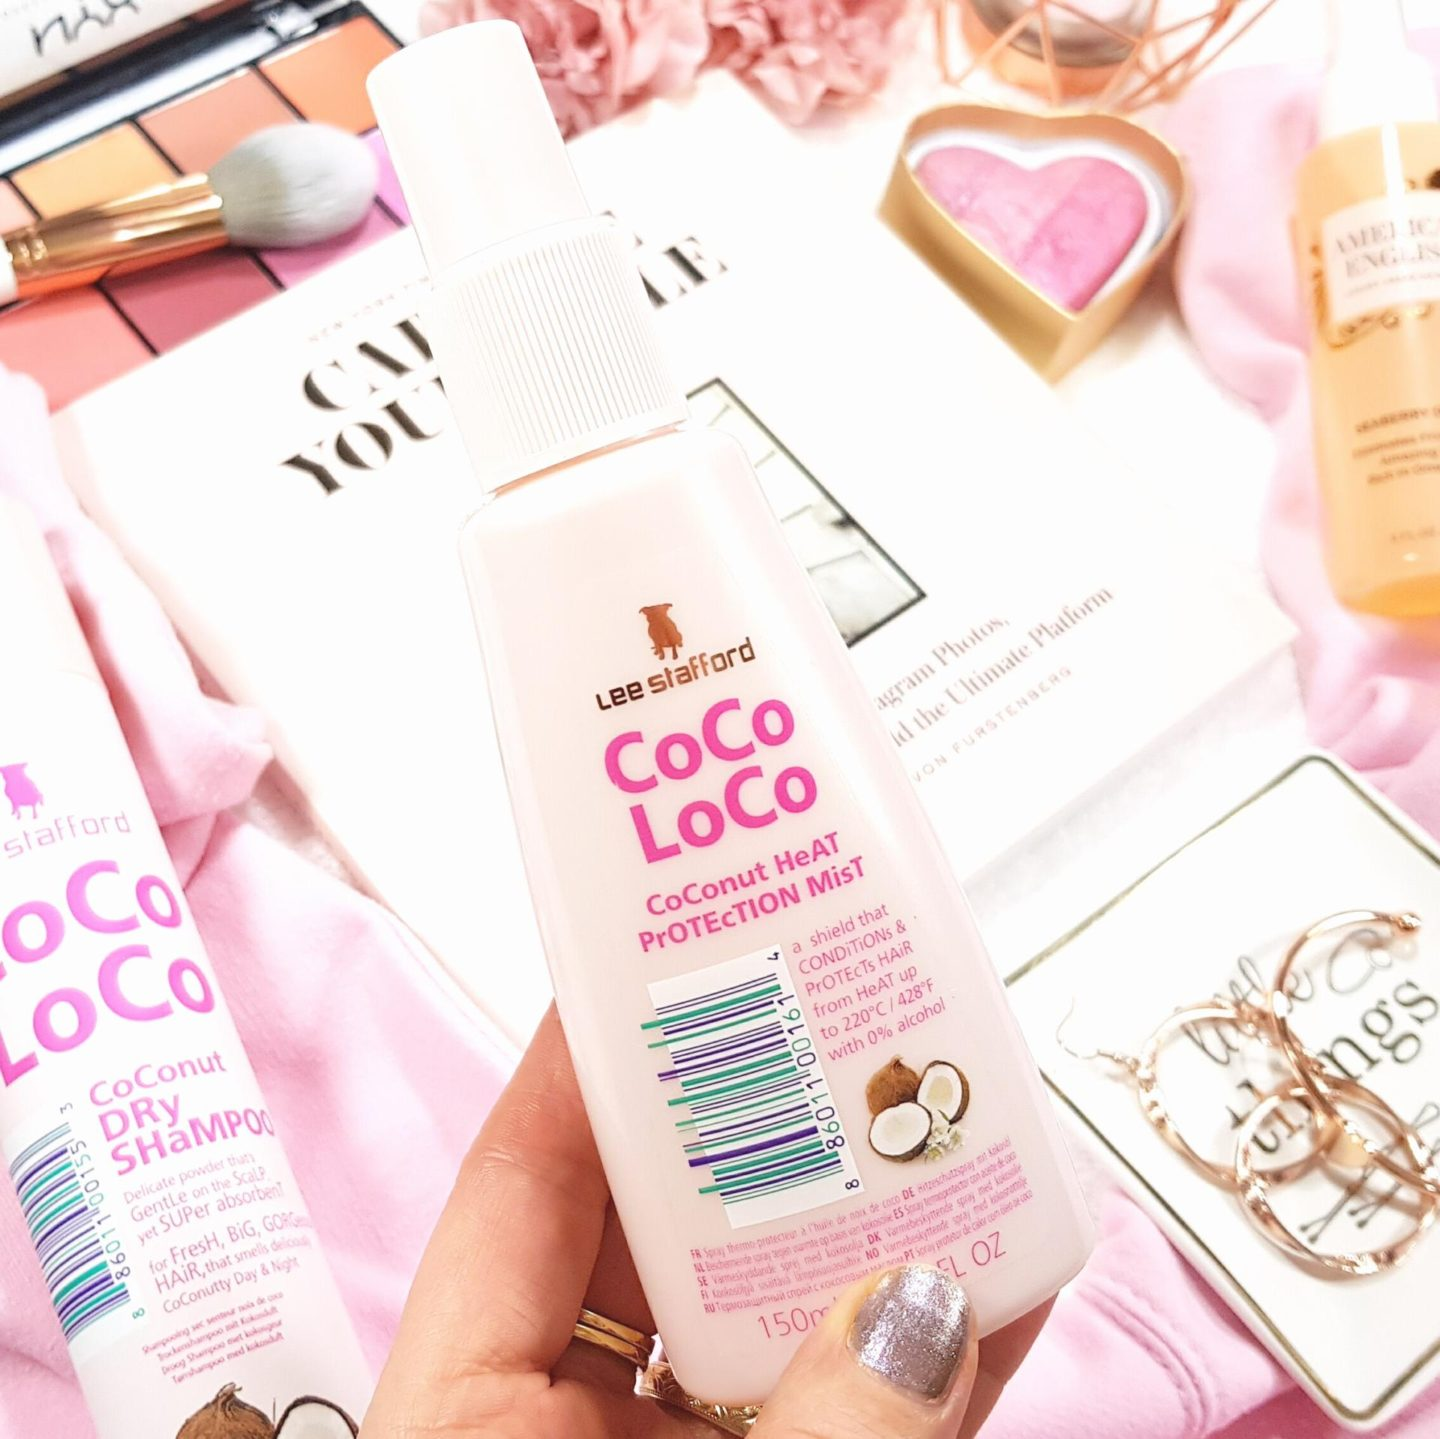 Lee Stafford Coco LoCo Heat Protection Mist is one of my hair styling essentials